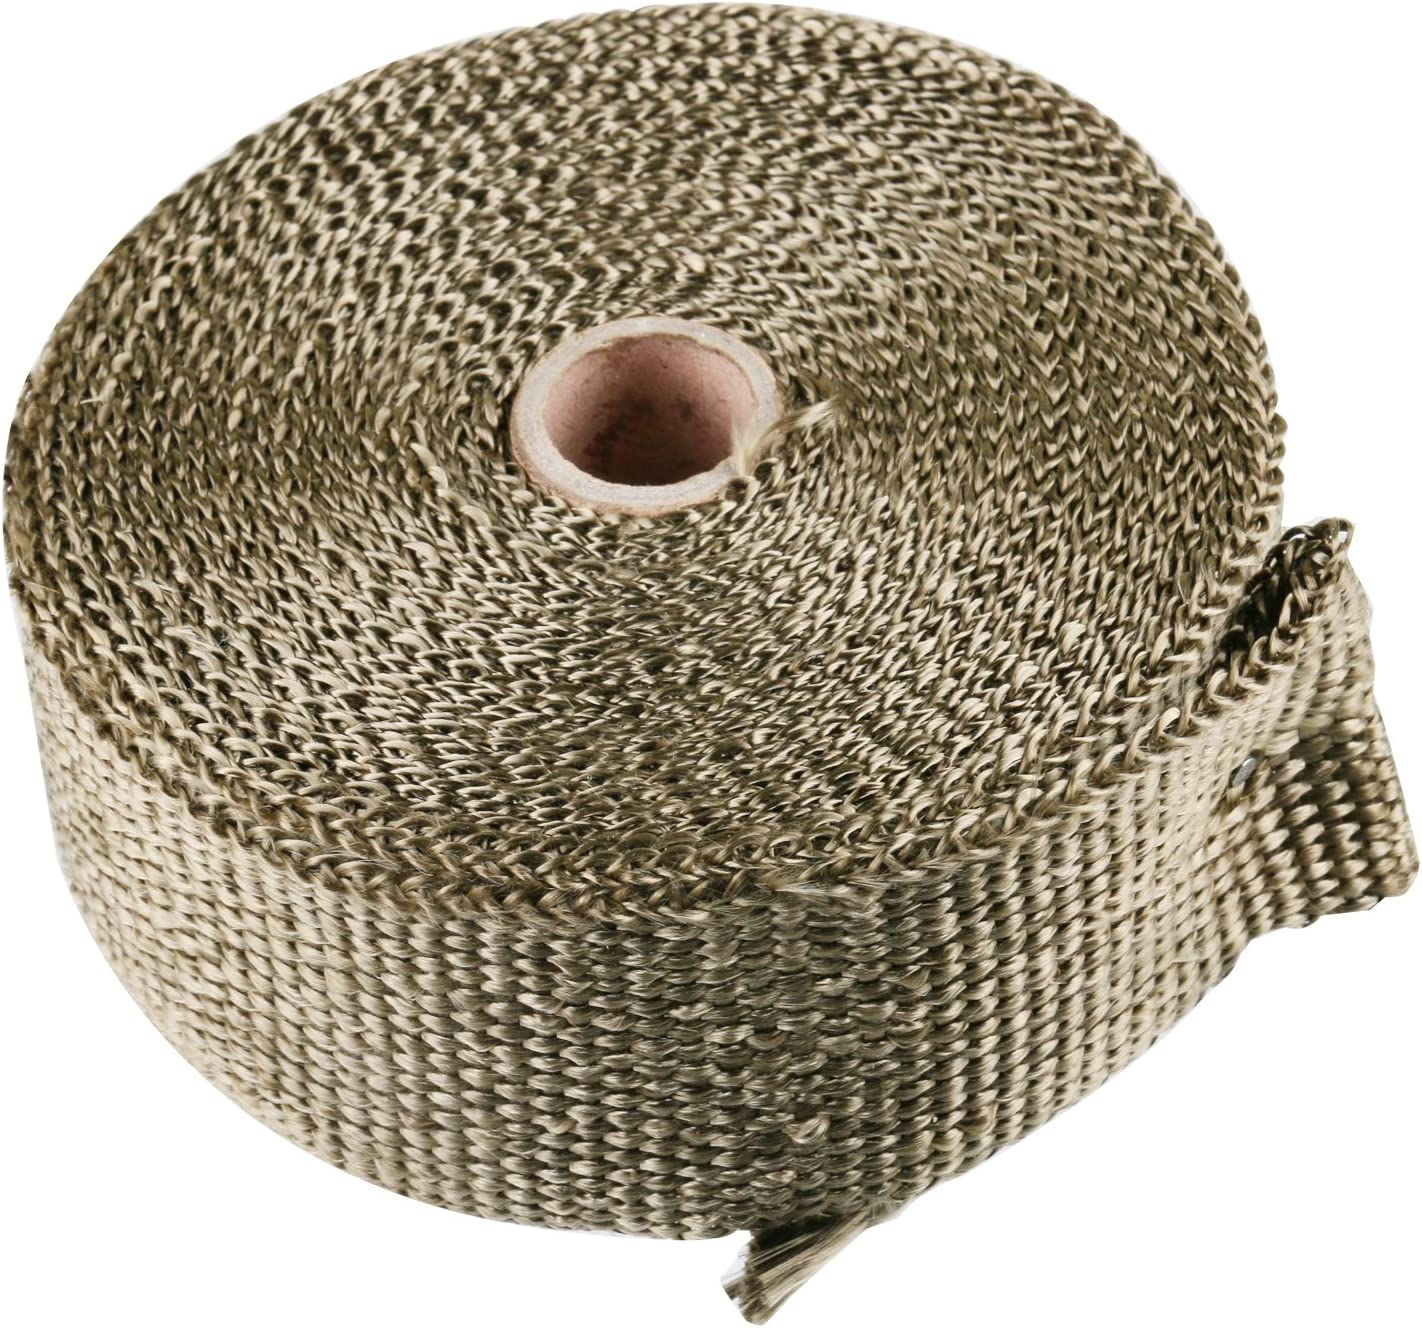 16.5 ft x 2 in Titanium Heat Wrap Exhaust Heat Shield Wrap Roll Basalt Fibre for Motorcycle Vehicle Boats Heat Proof Tape 6pcs Stainless Cable Ties